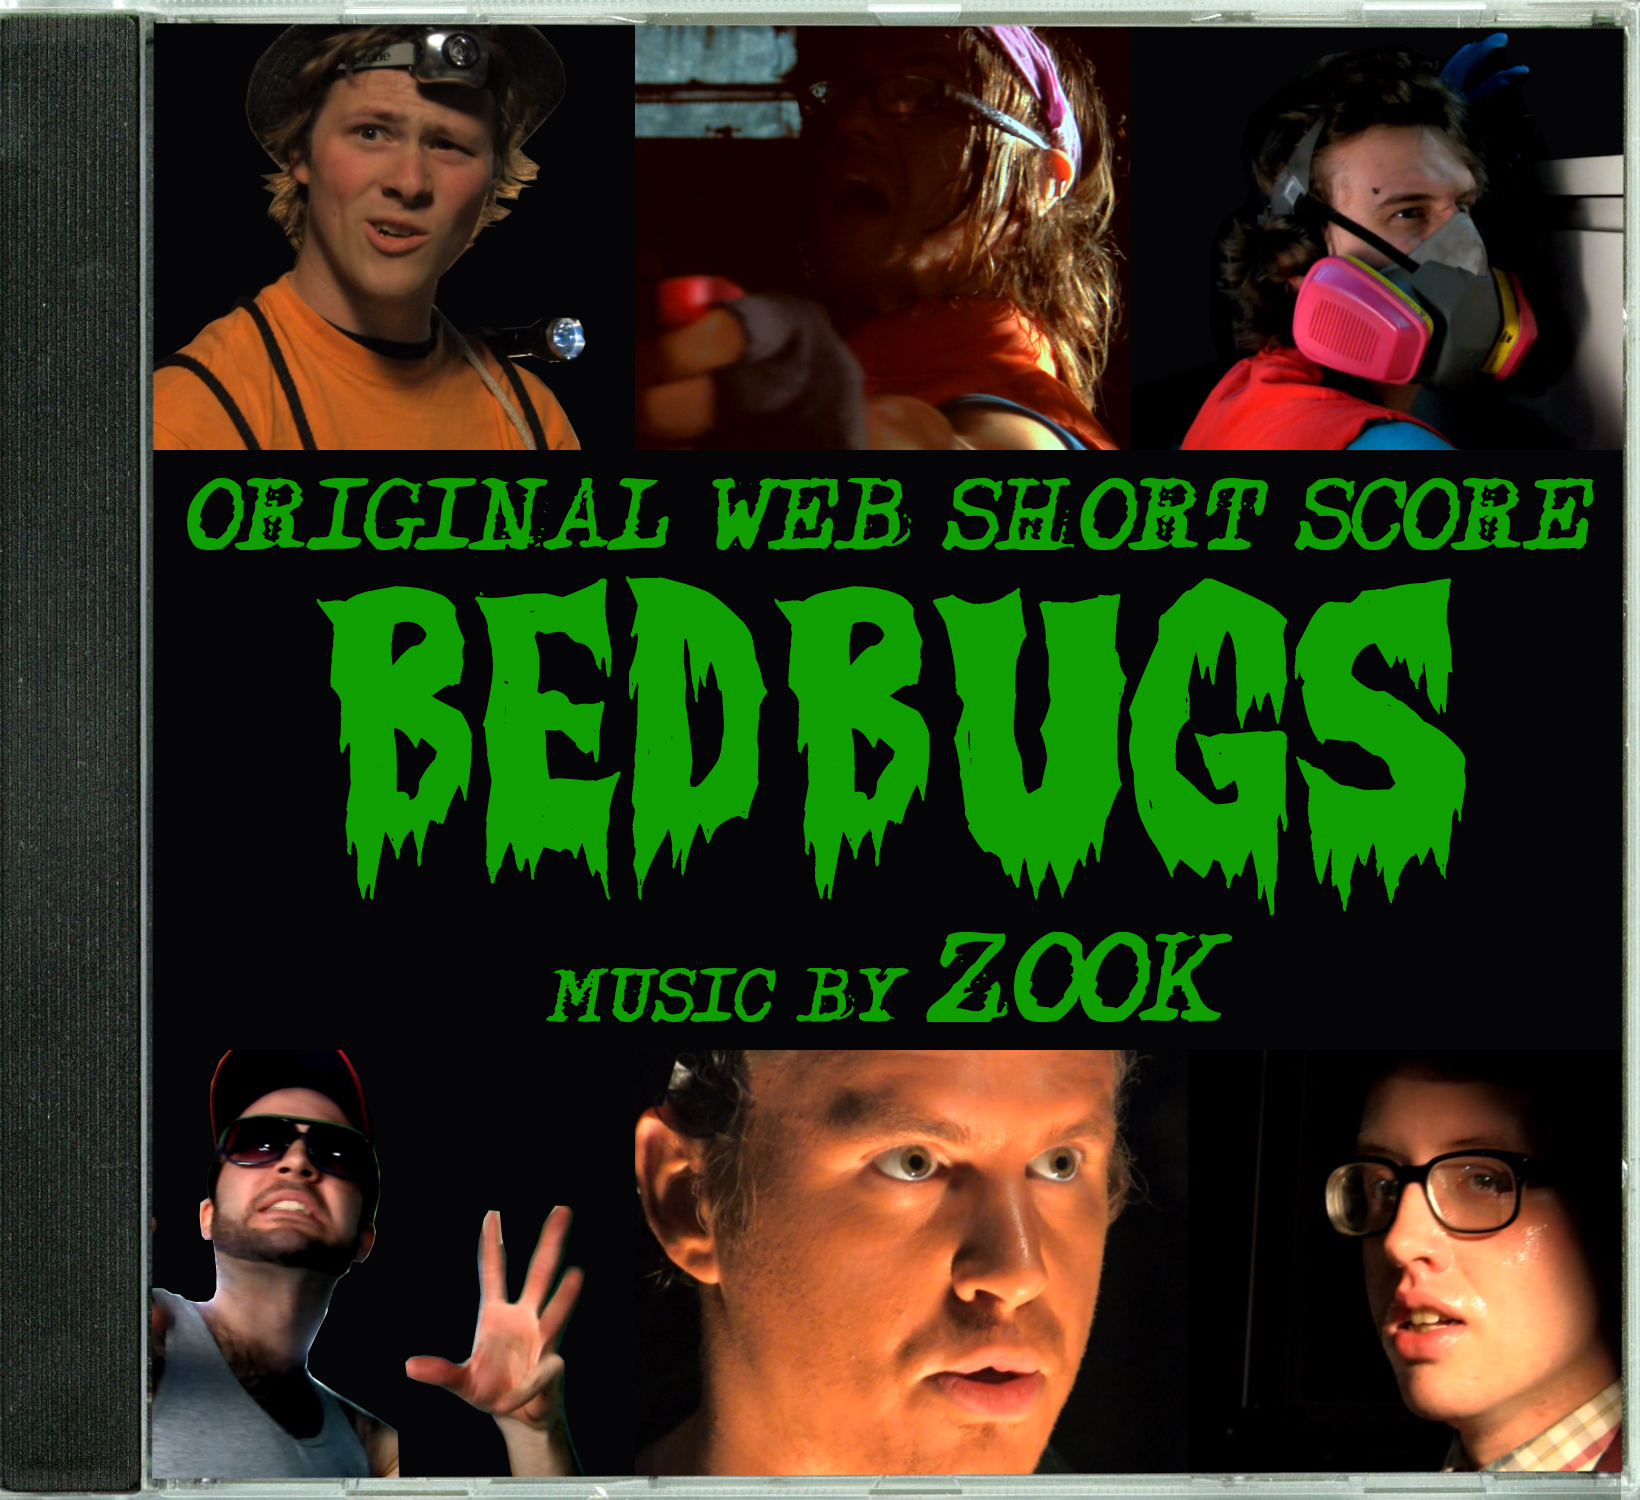 Bedbugs_Soundtrack_Cover.jpg